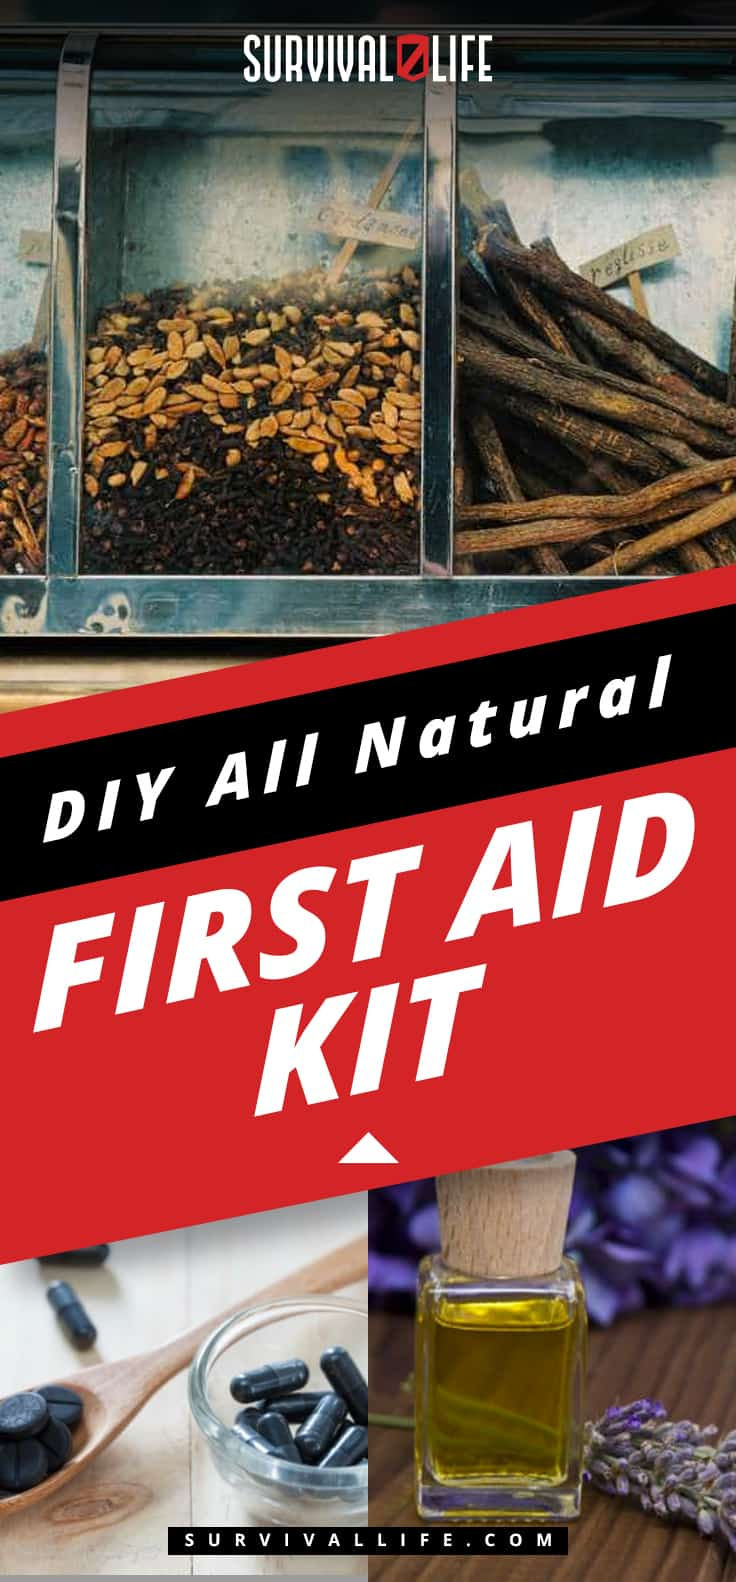 DIY All Natural First Aid Kit